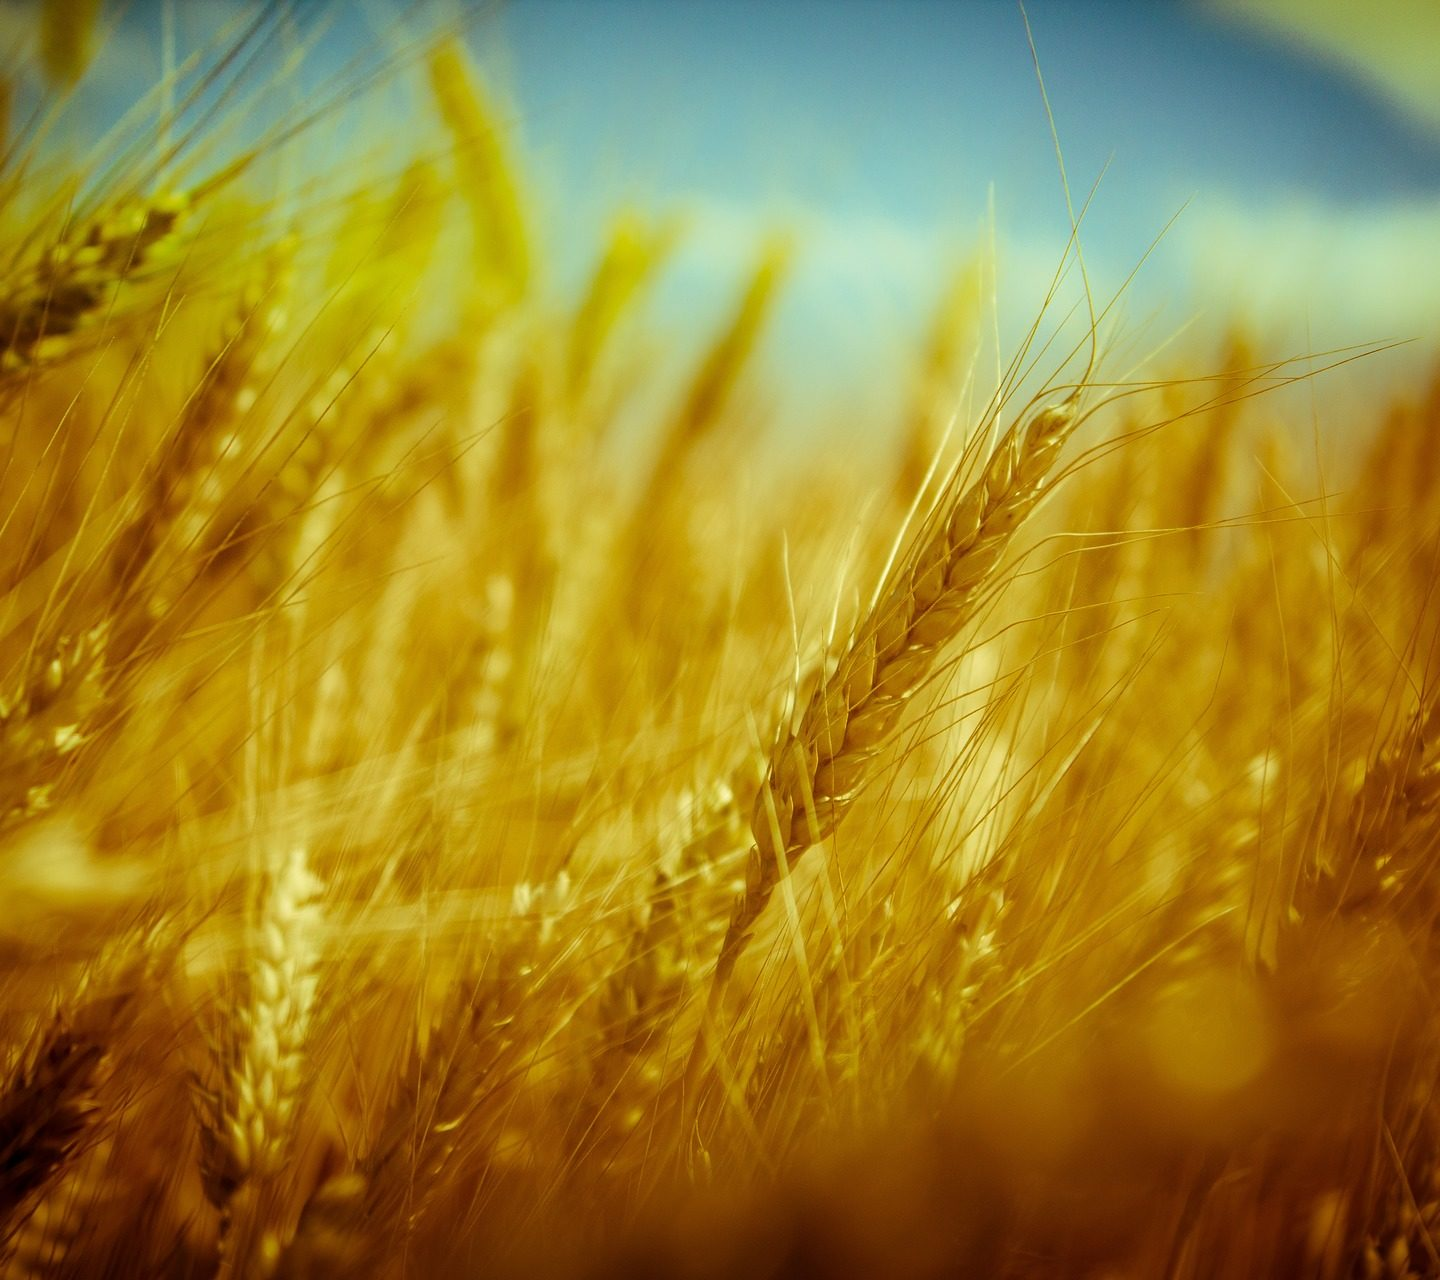 CRISPR-Cas9 delivered in wheat using Agrobacterium